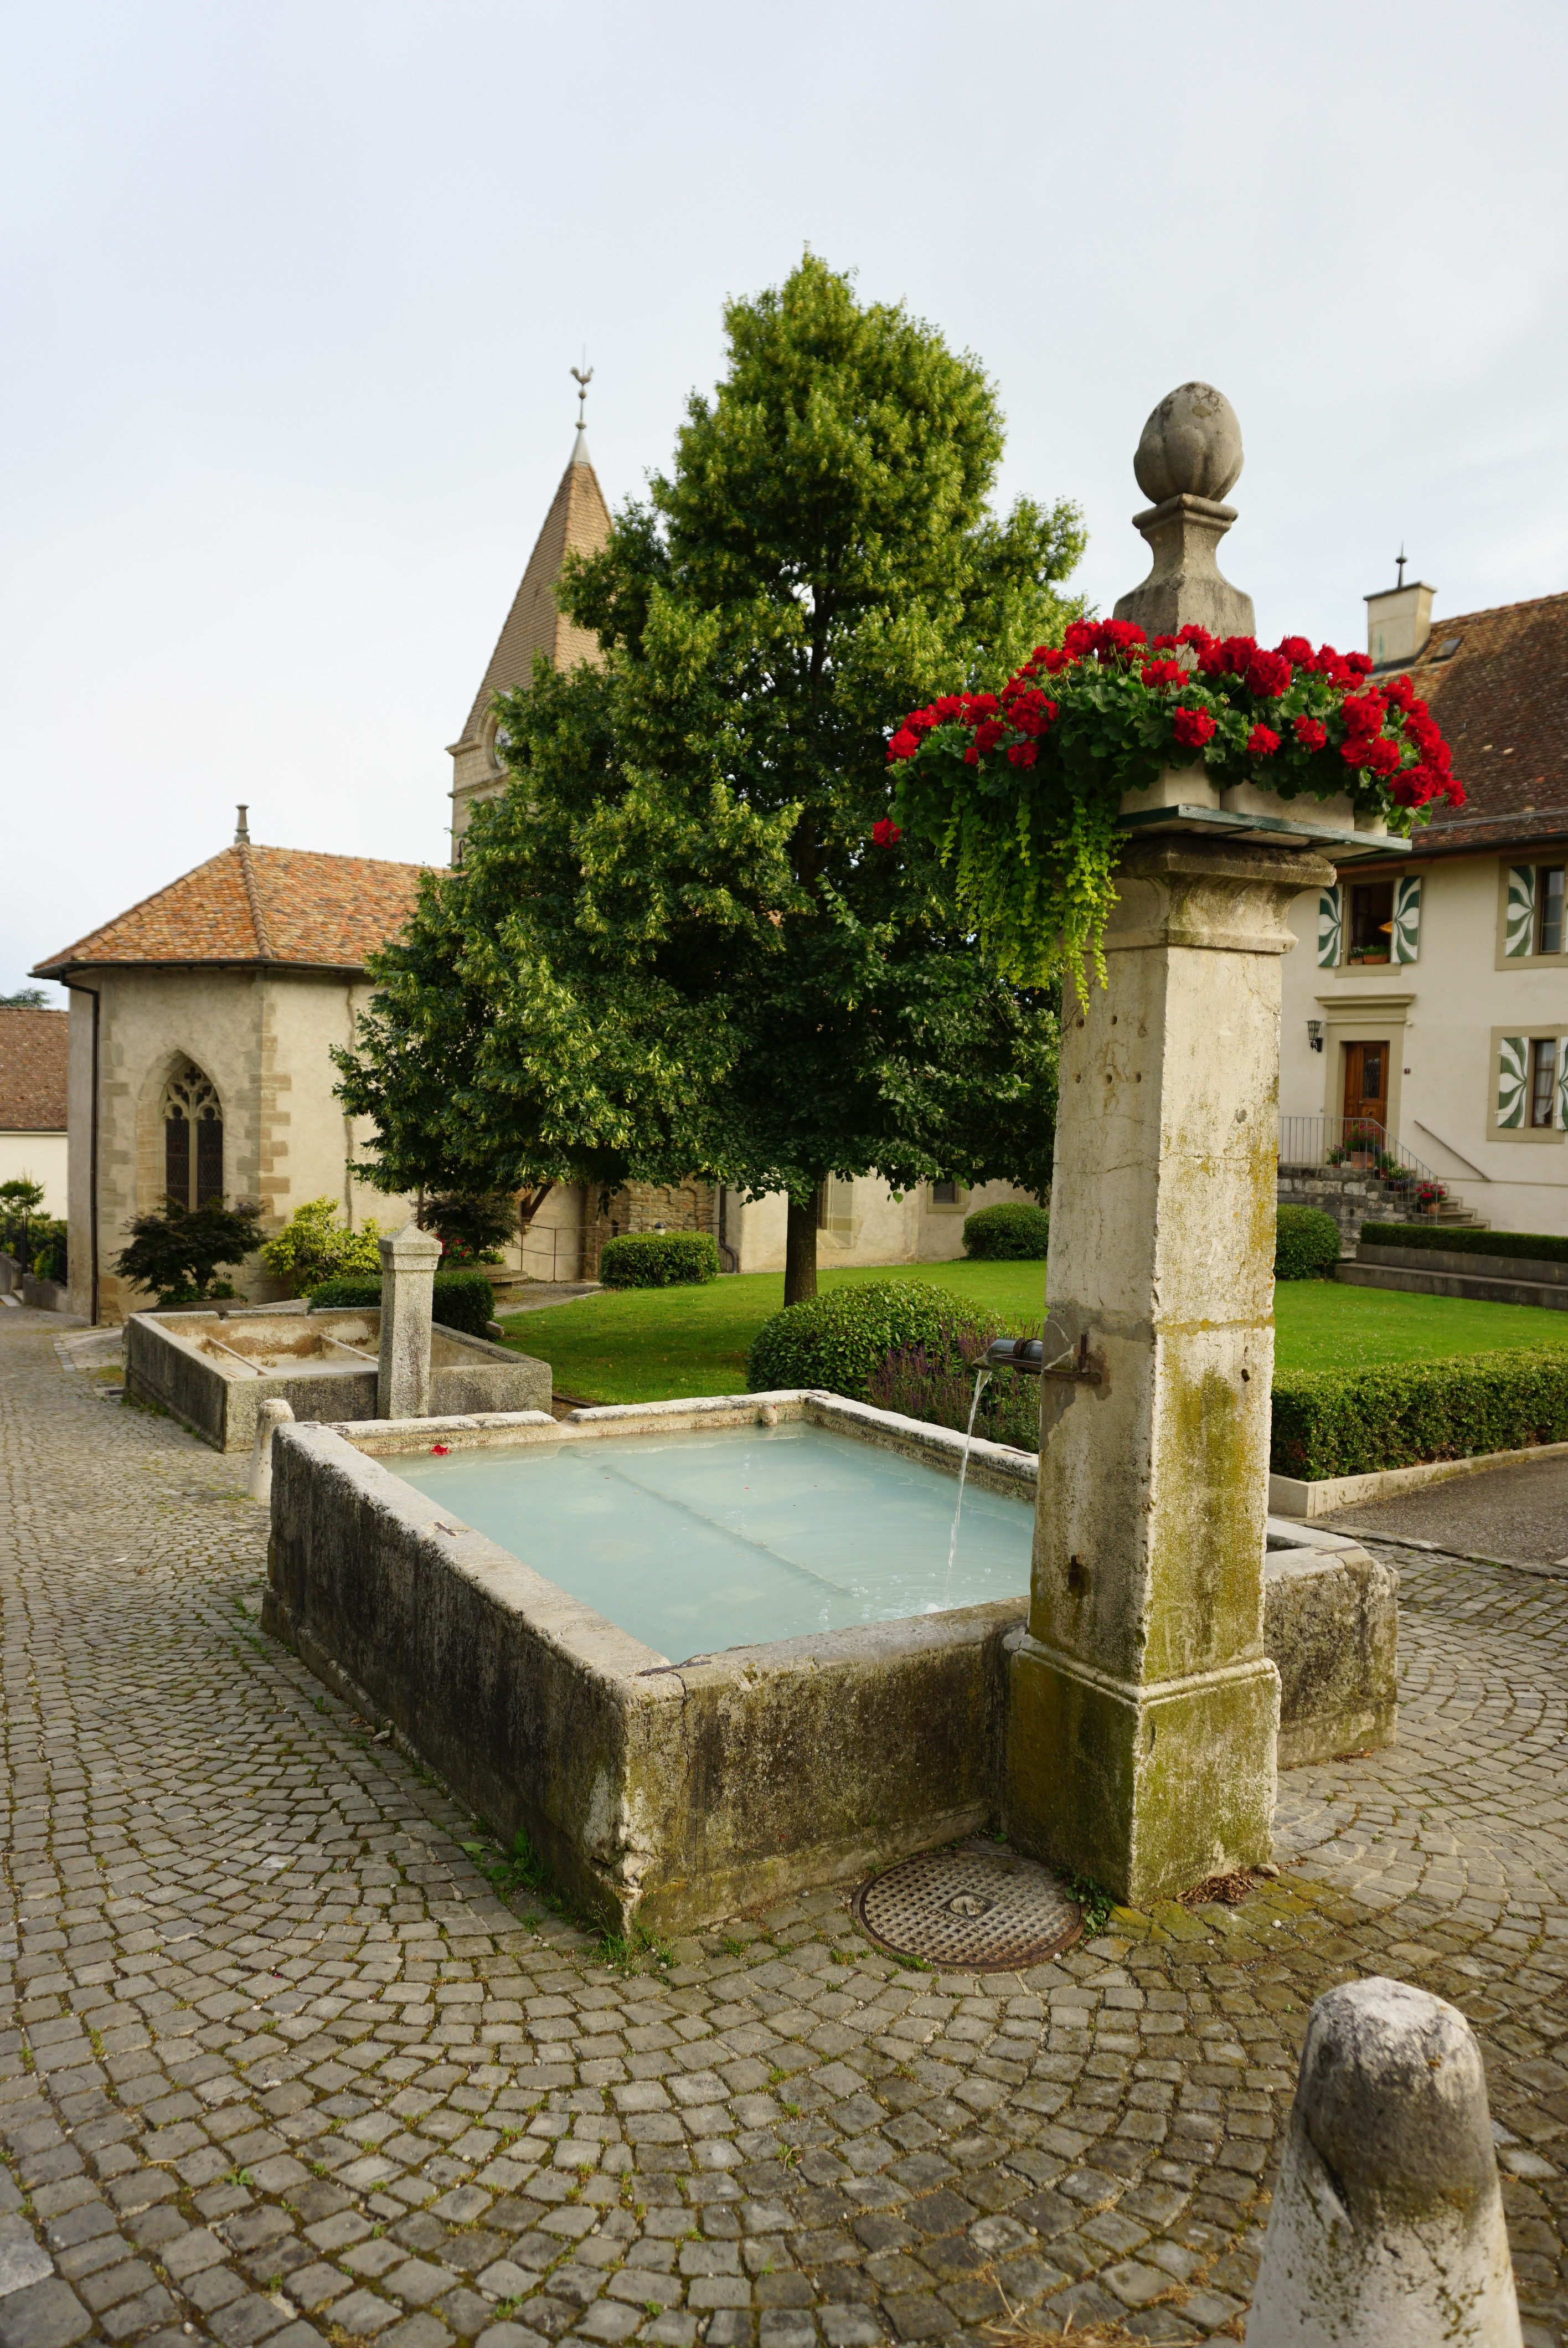 there are fountains throughout these small towns dating back to the 1800s. You can see our old church behind it.